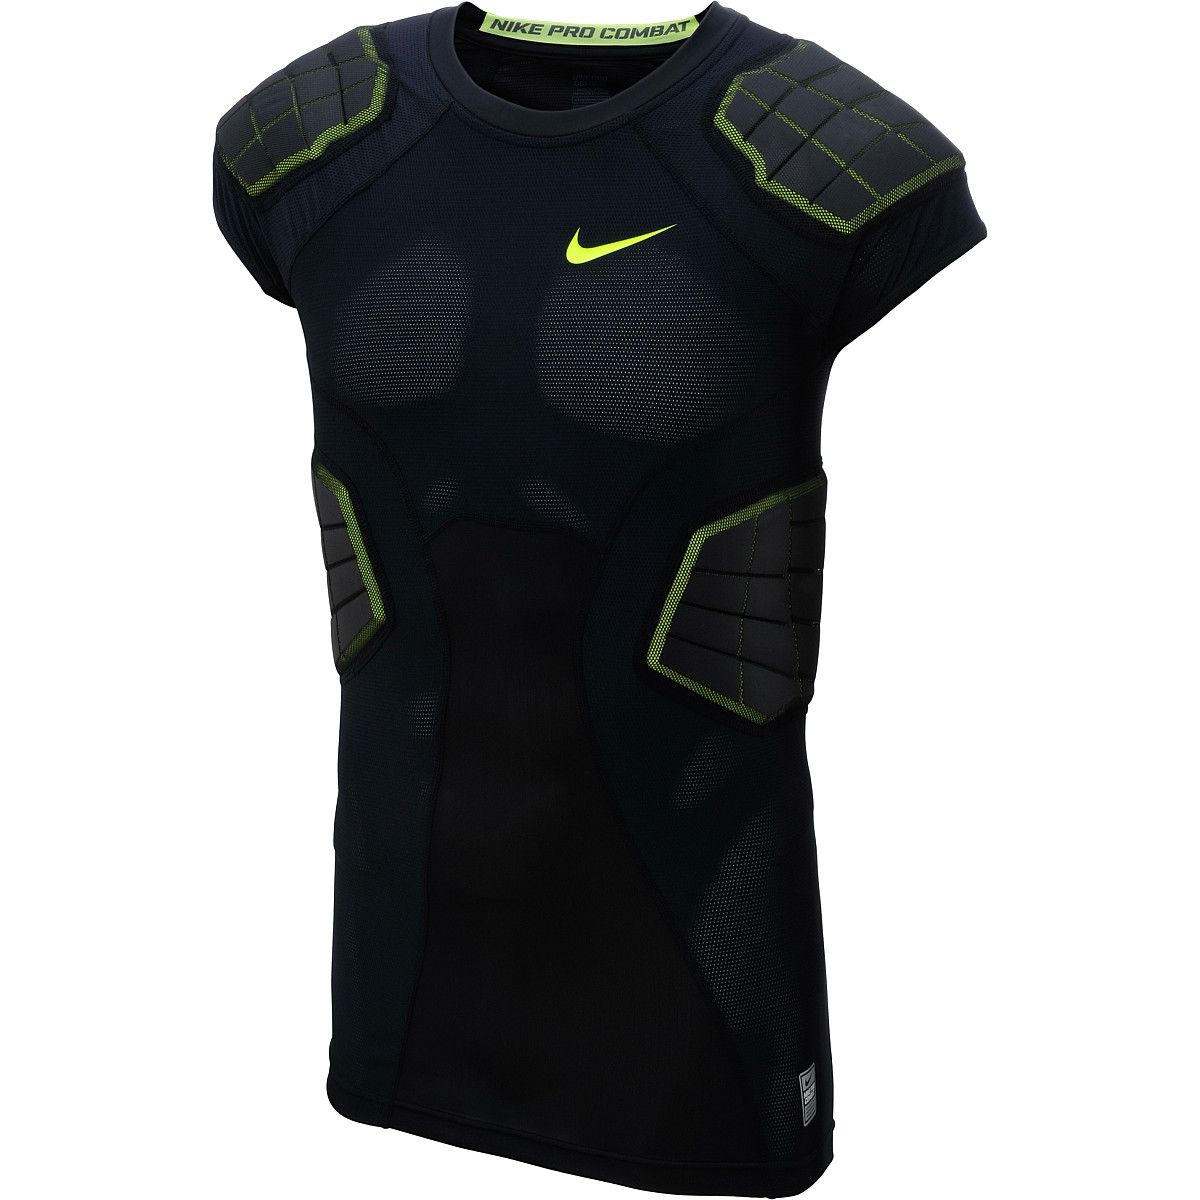 Nike mens pro combat hyperstrong 30 compression 4pad